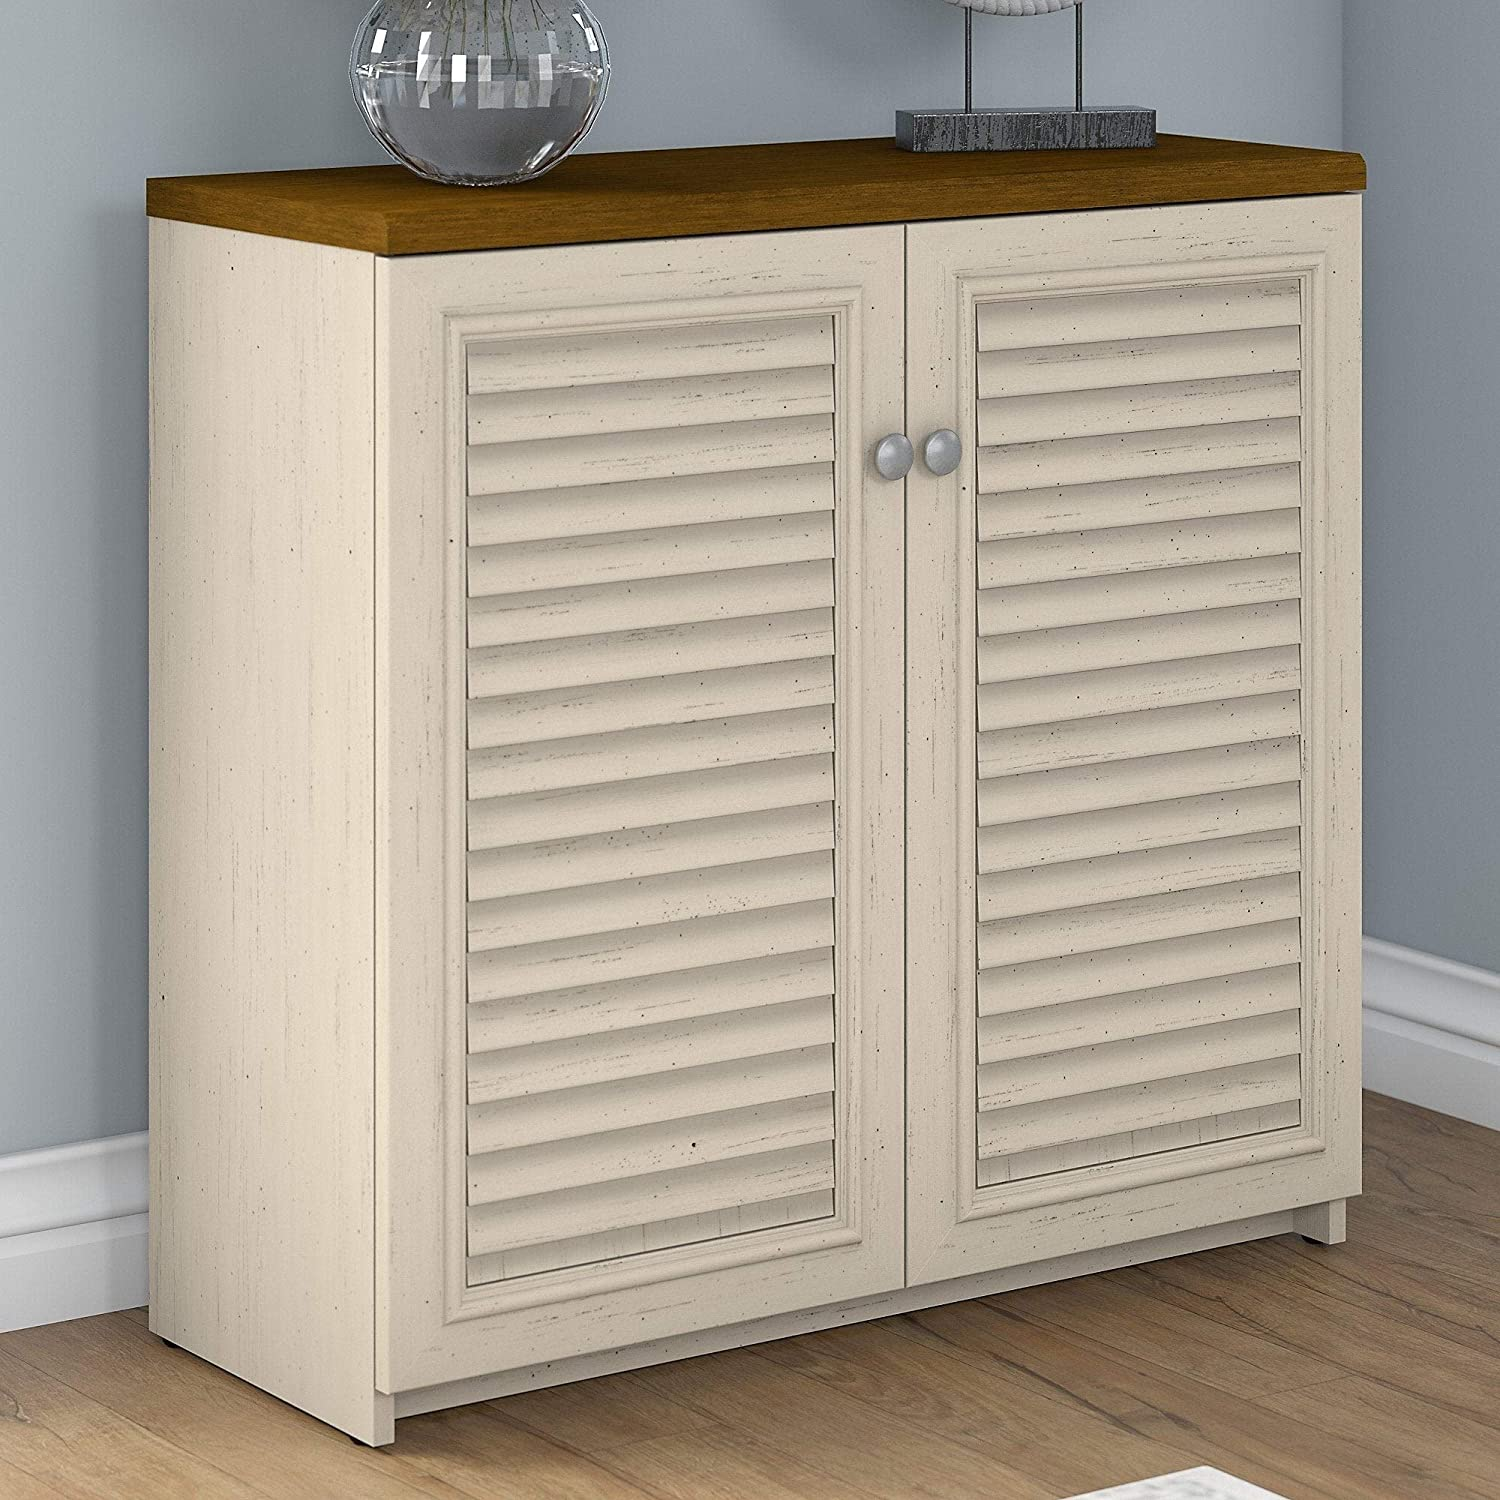 Amazon Com 2 Door Storage Cabinet In Antique White And Tea Maple 30 7 In Cream Cabin Lodge Mdf Modular Kitchen Dining